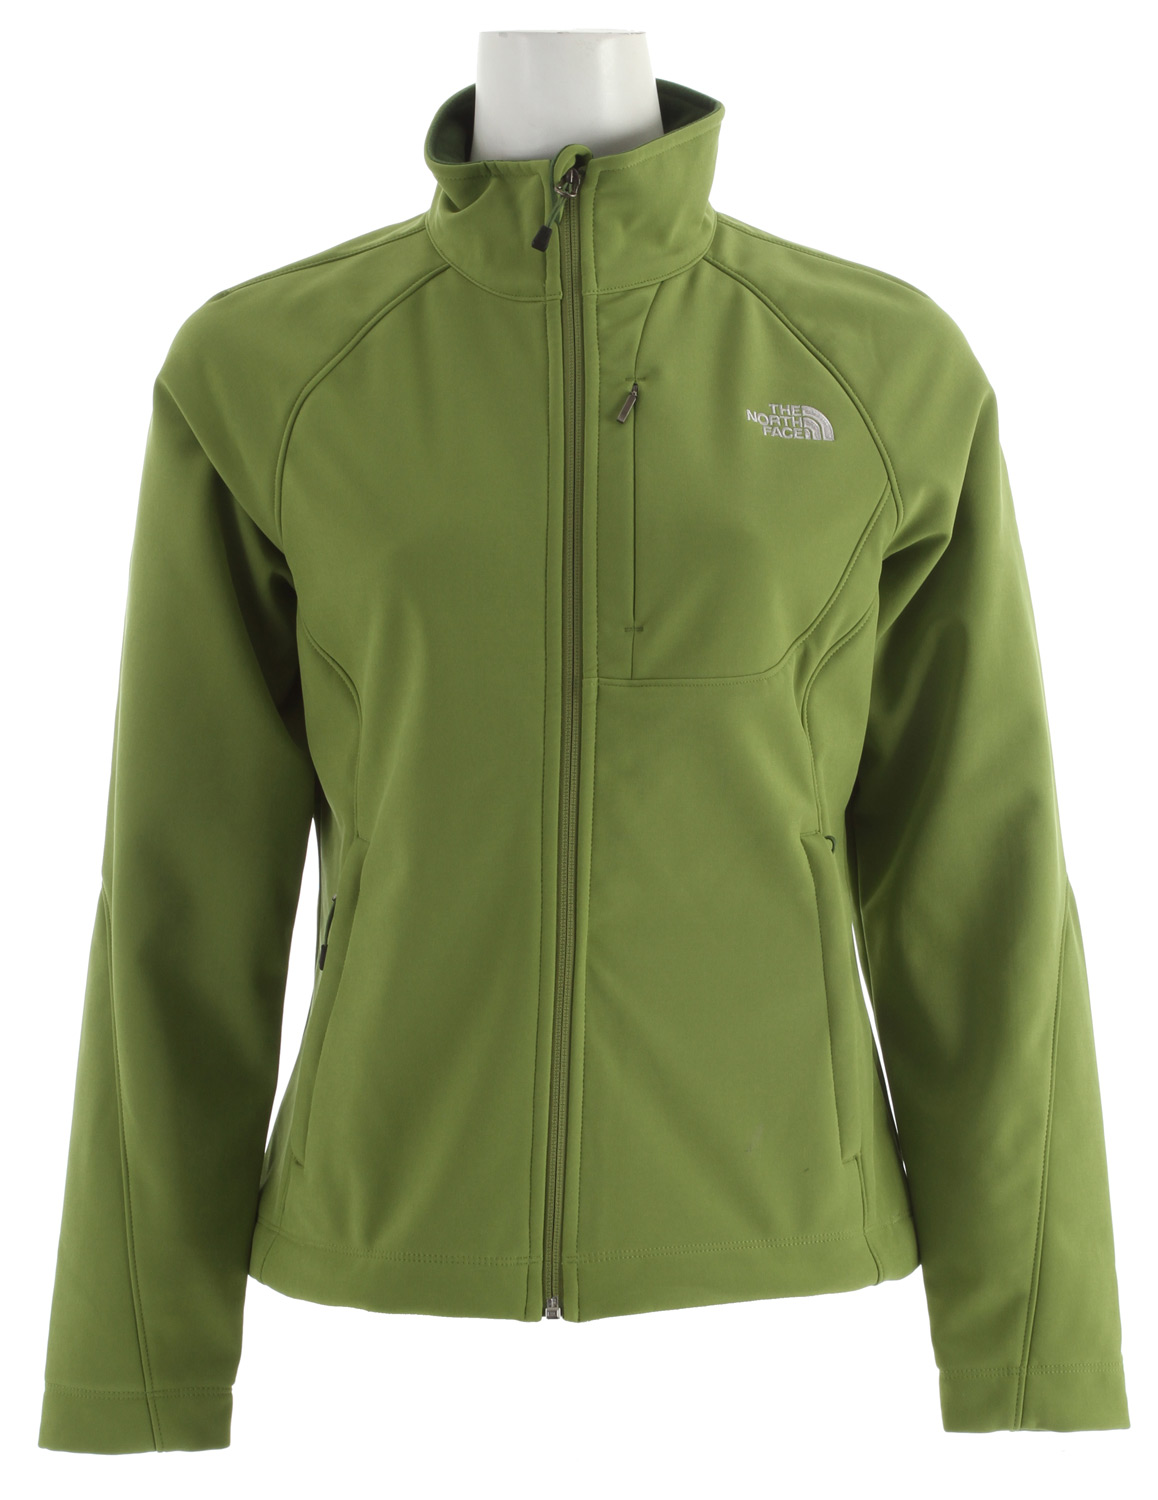 Versatile and widely worn soft shell has enhanced windproof features and a stretchy, comfortable fit; ideal for multiple activities.* Standard fit * TNF Apex ClimateBlock fabric wind permeability rated at 0 CFM * Fleece backer * Napoleon chest pocket * Two hand pockets * Internal stretch comfort cuffs - $100.95